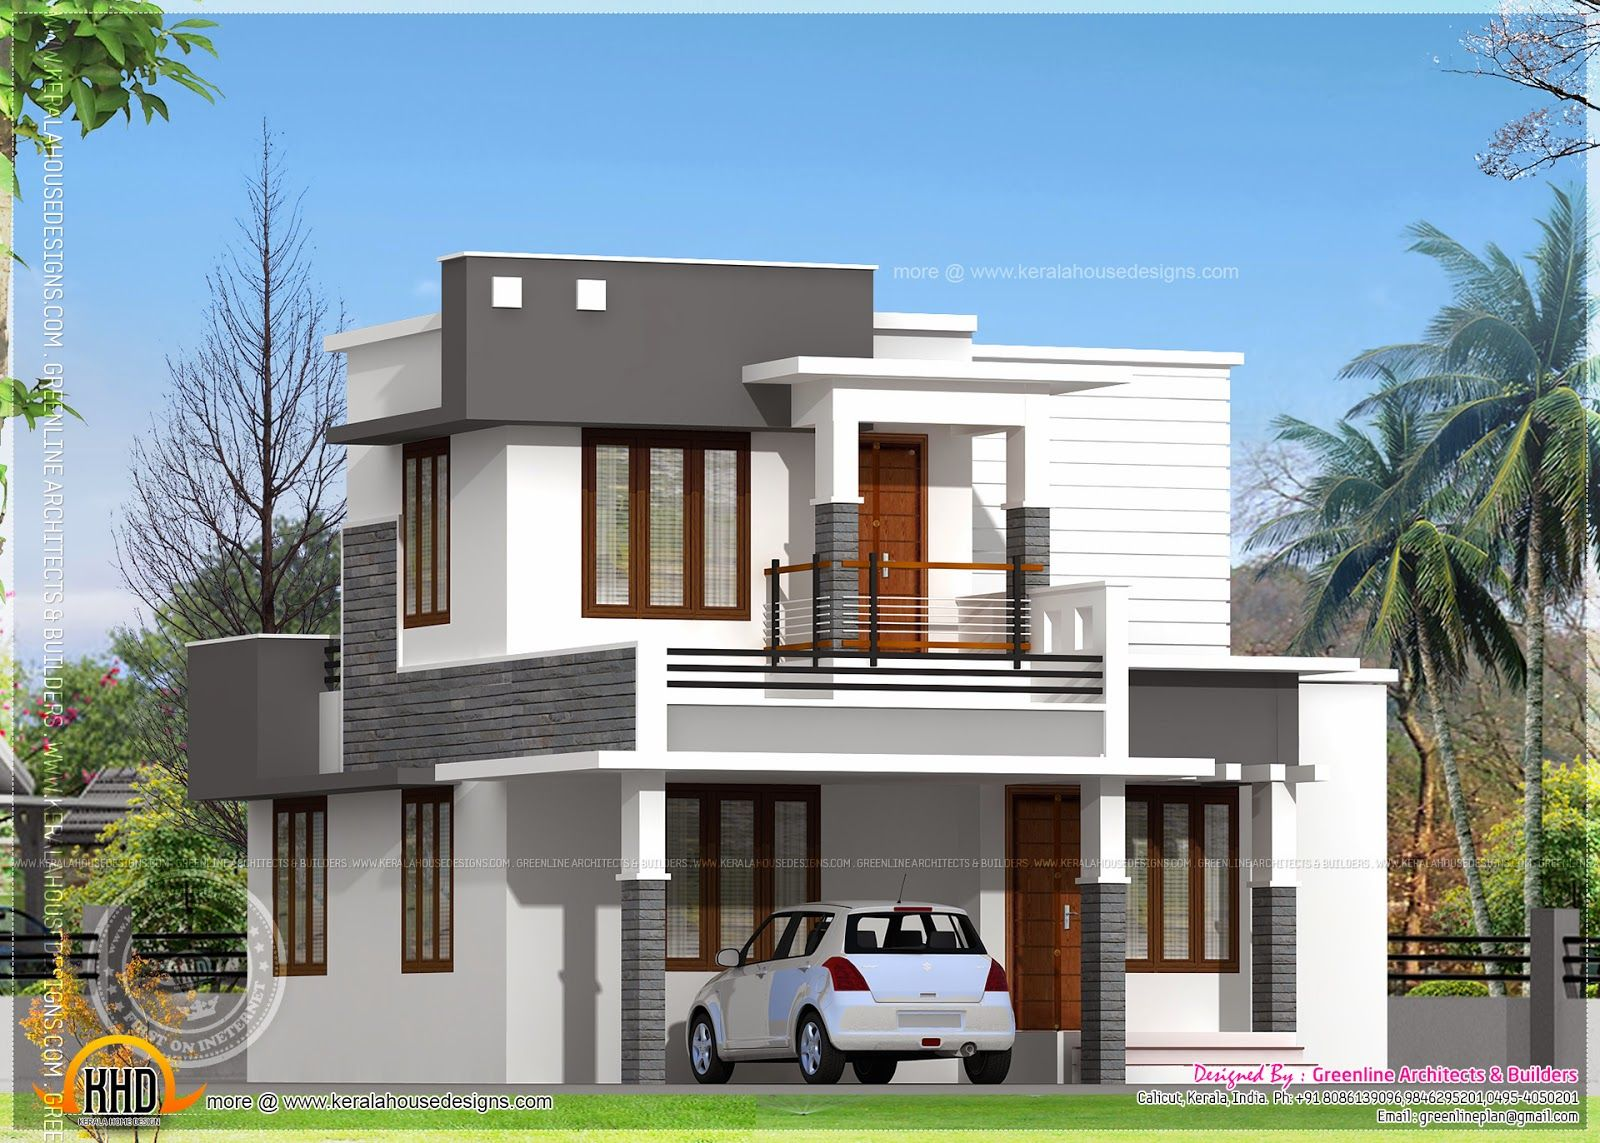 View Source Flat Roof Houses House Design